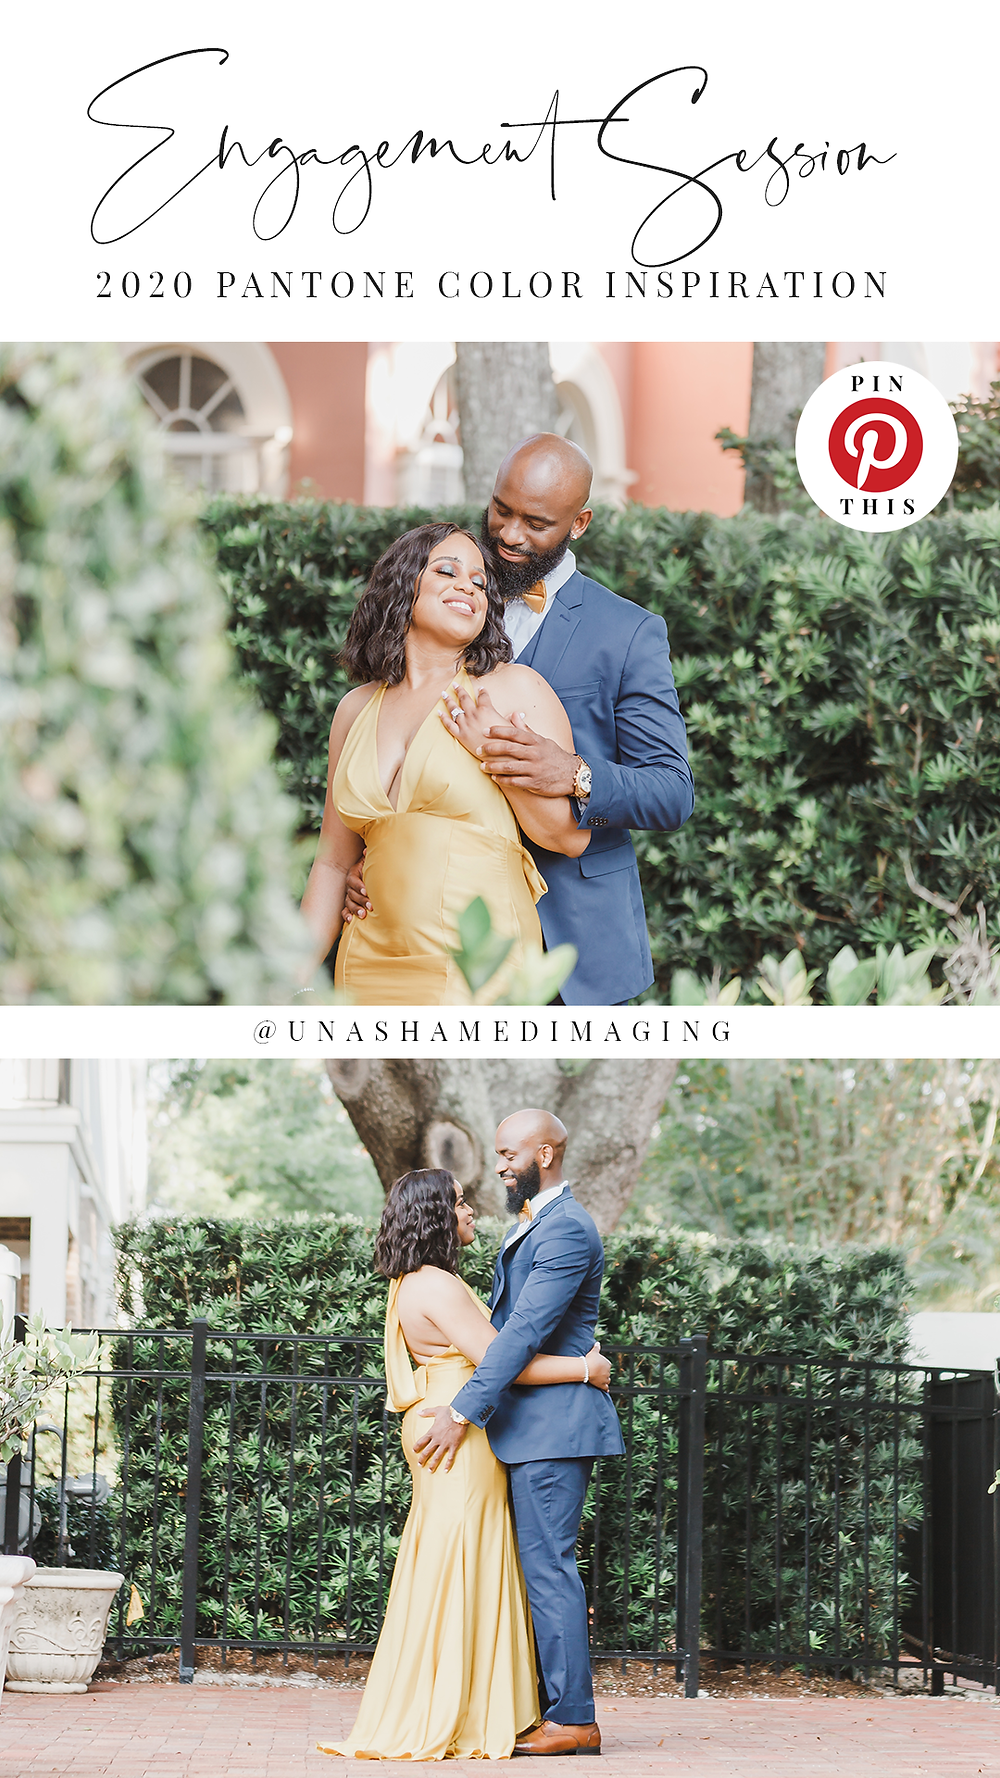 2020 Pantone Color Engagement Session Inspiration. Photography by Unashamed Imaging